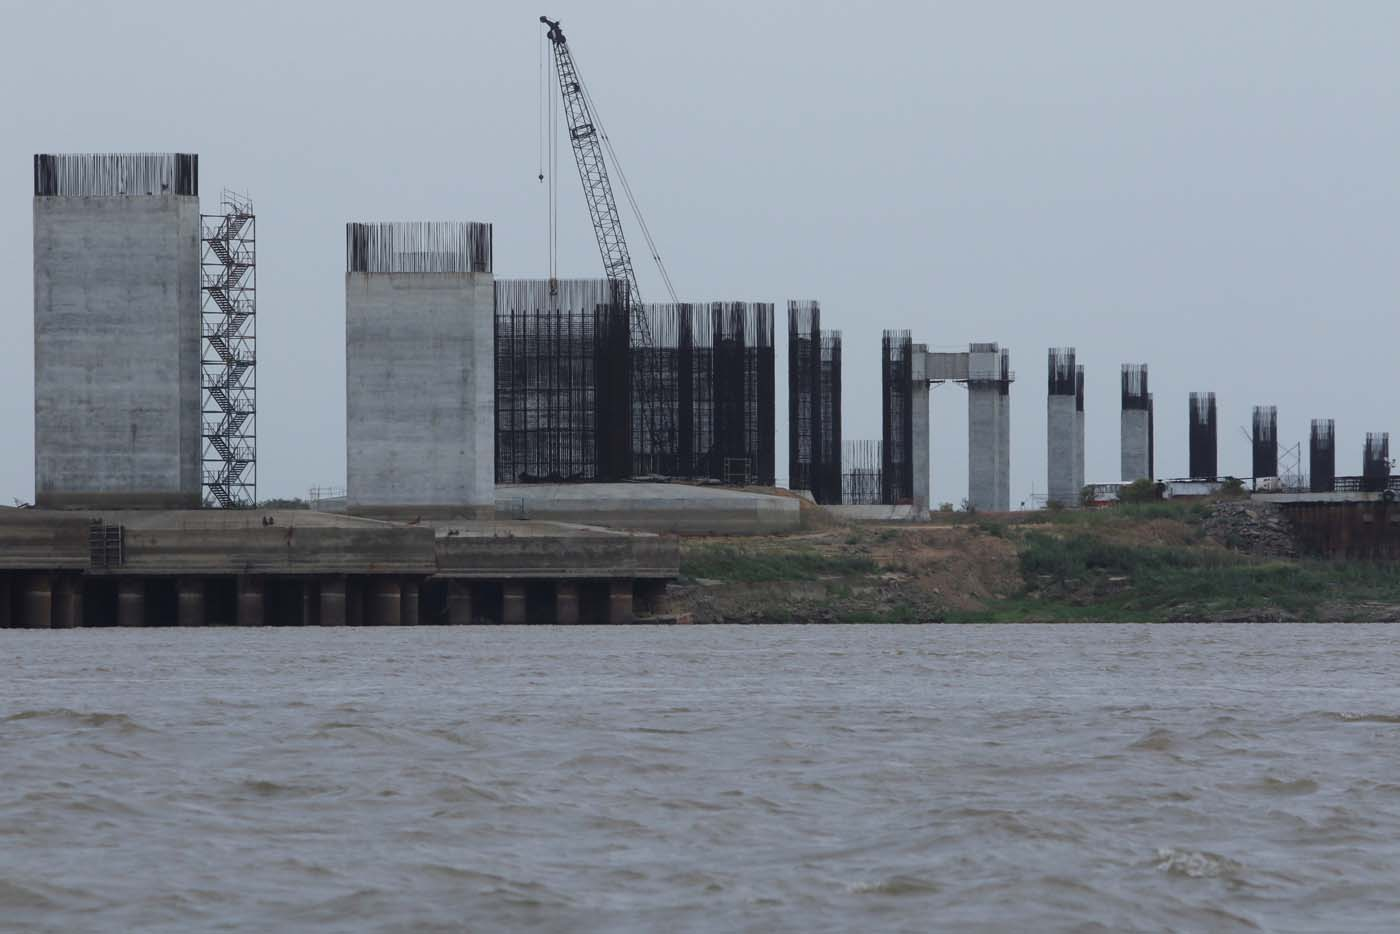 A view of a construction site by Odebrecht of the third bridge over the Orinoco River is seen in Caicara del Orinoco, Venezuela March 21, 2017. Picture taken March 21, 2017. REUTERS/William Urdaneta